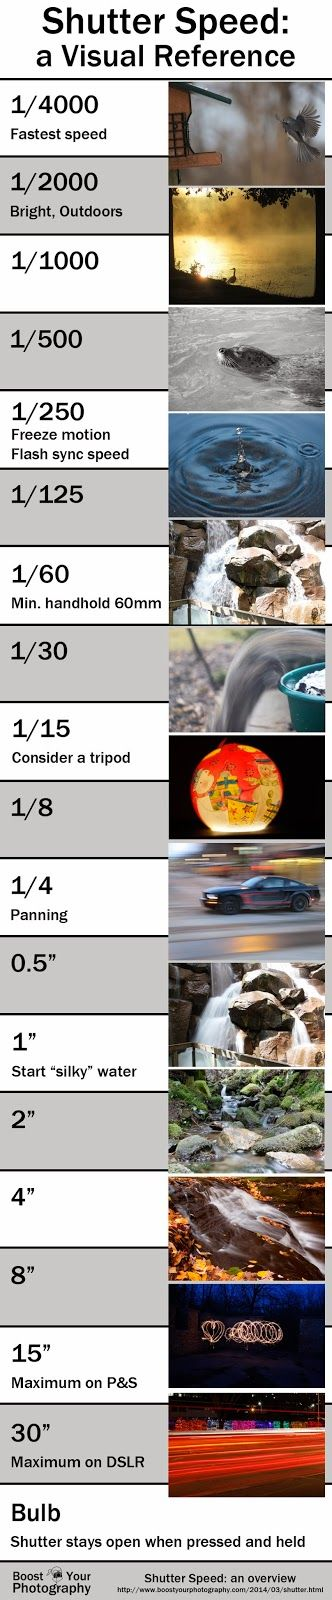 Shutter Speed: an overview |